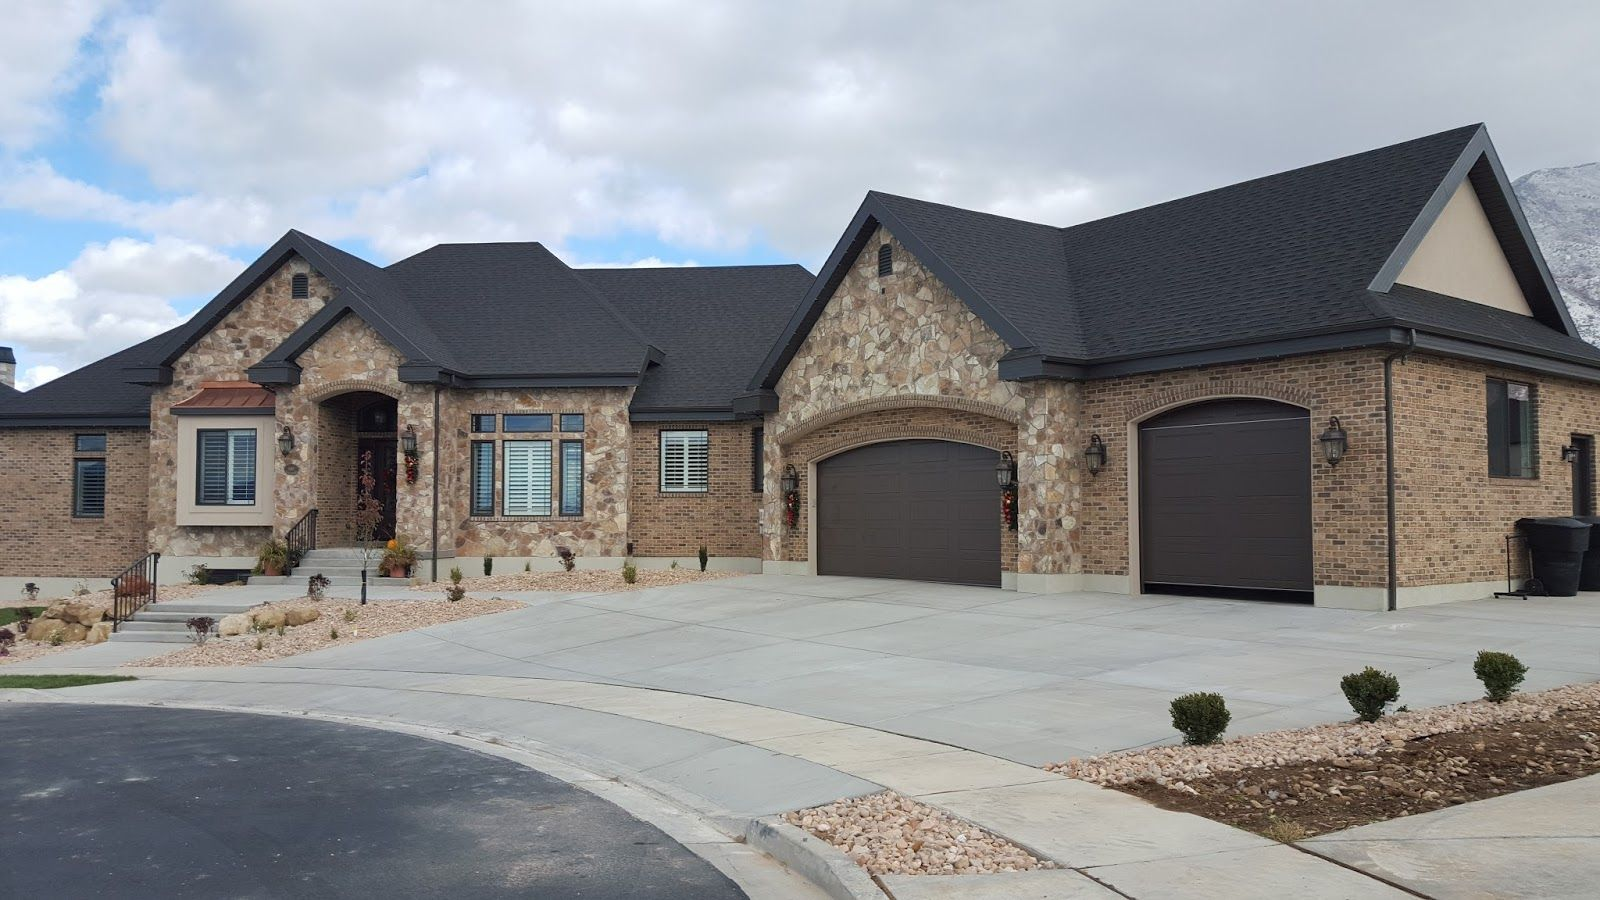 Brick And Stone Exterior Combinations Brick And Stucco Combinations Google Search Exterior